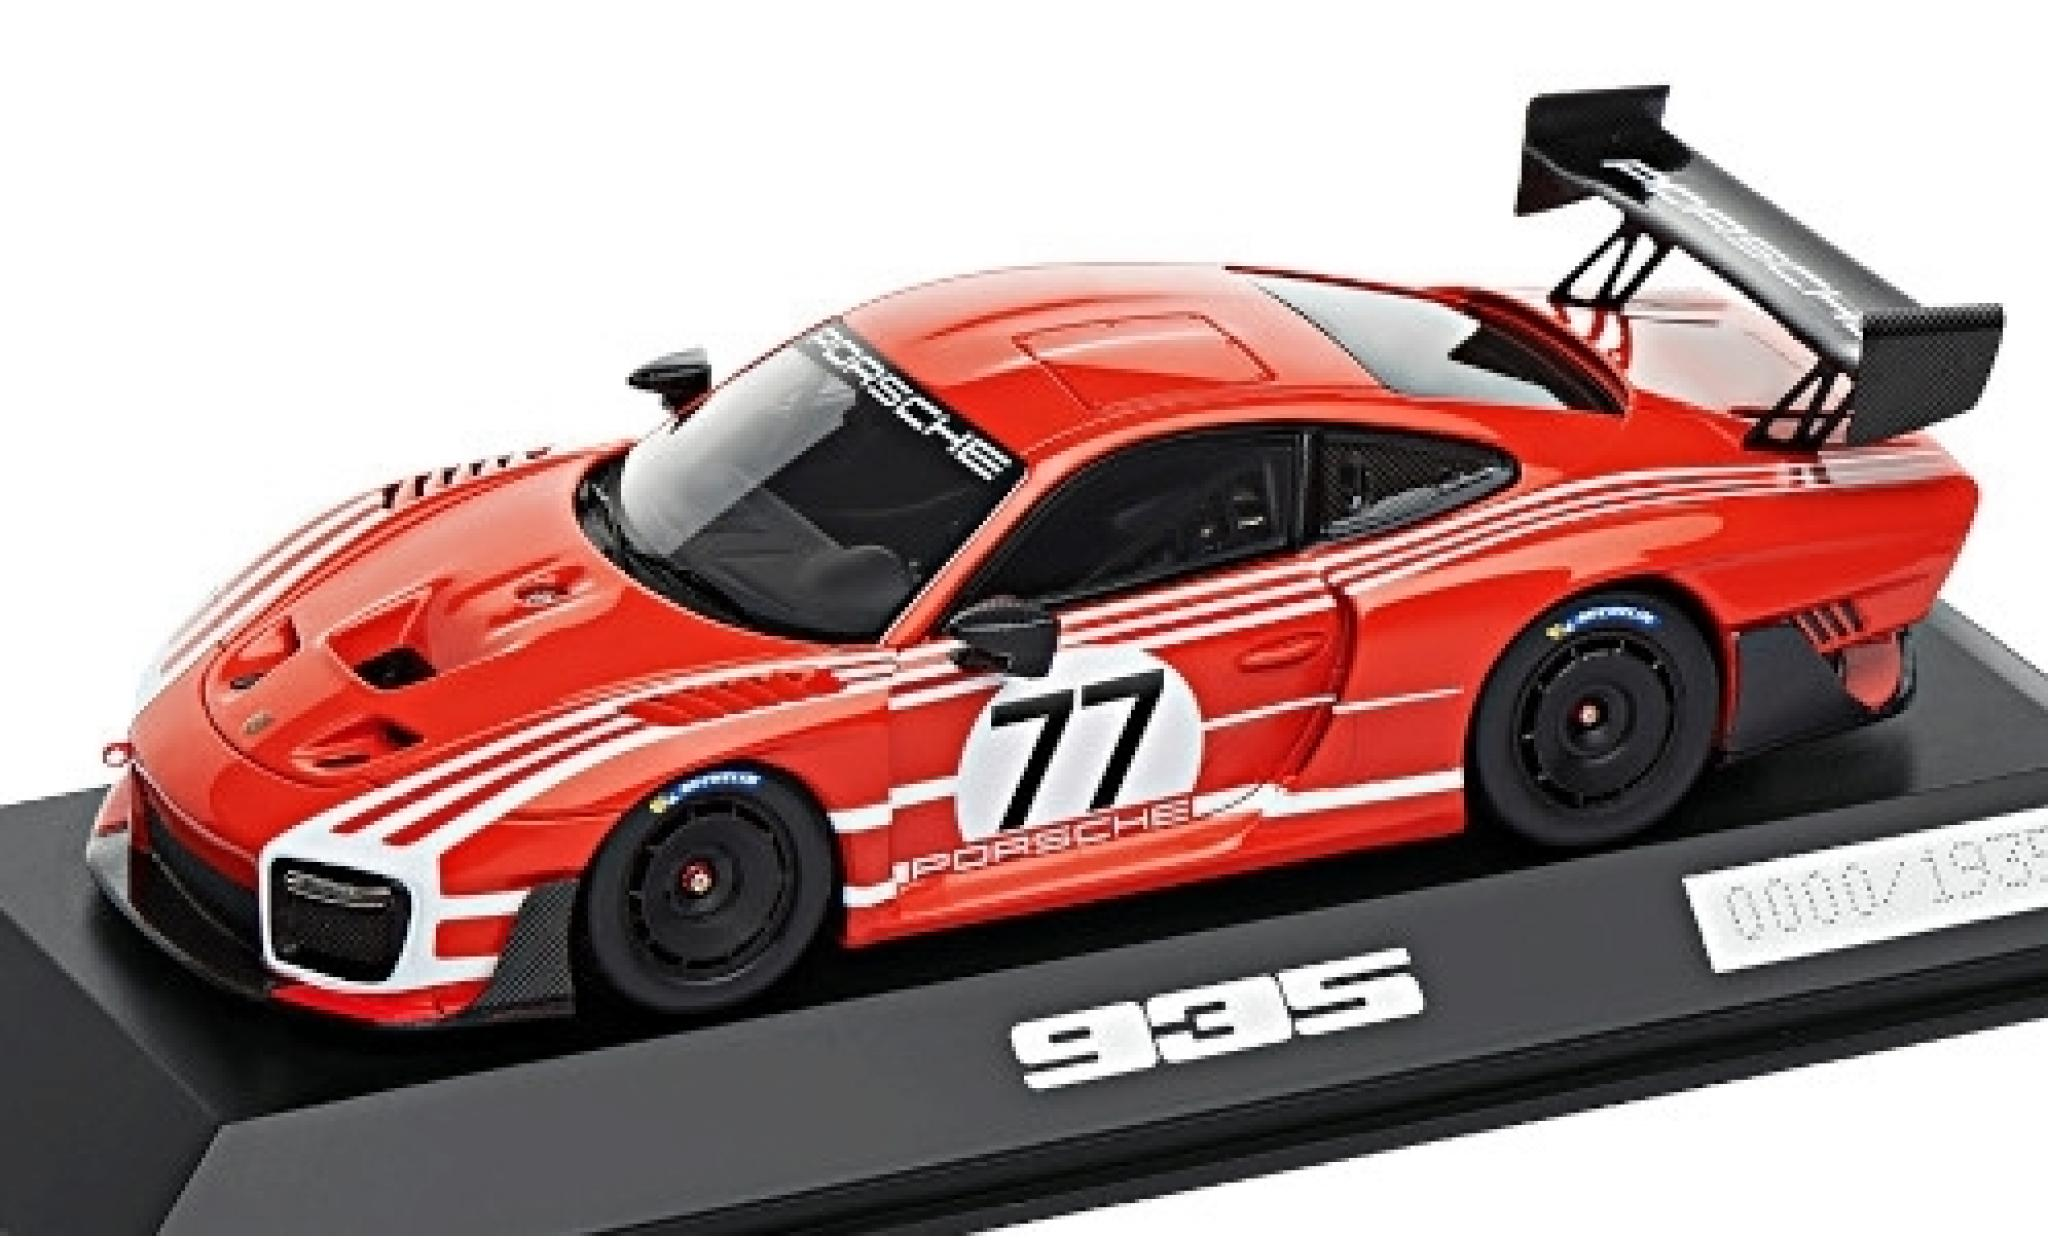 Porsche 991 GT2 RS 1/43 I Spark 935 red/white No.77 Salzburg Basis: 911 Clubsport (.2)